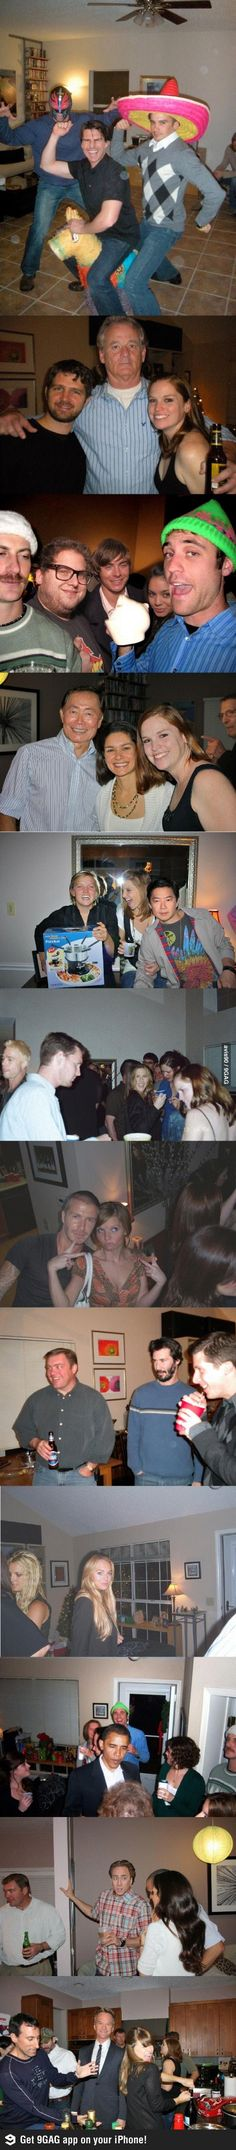 This guy used photoshop for his party